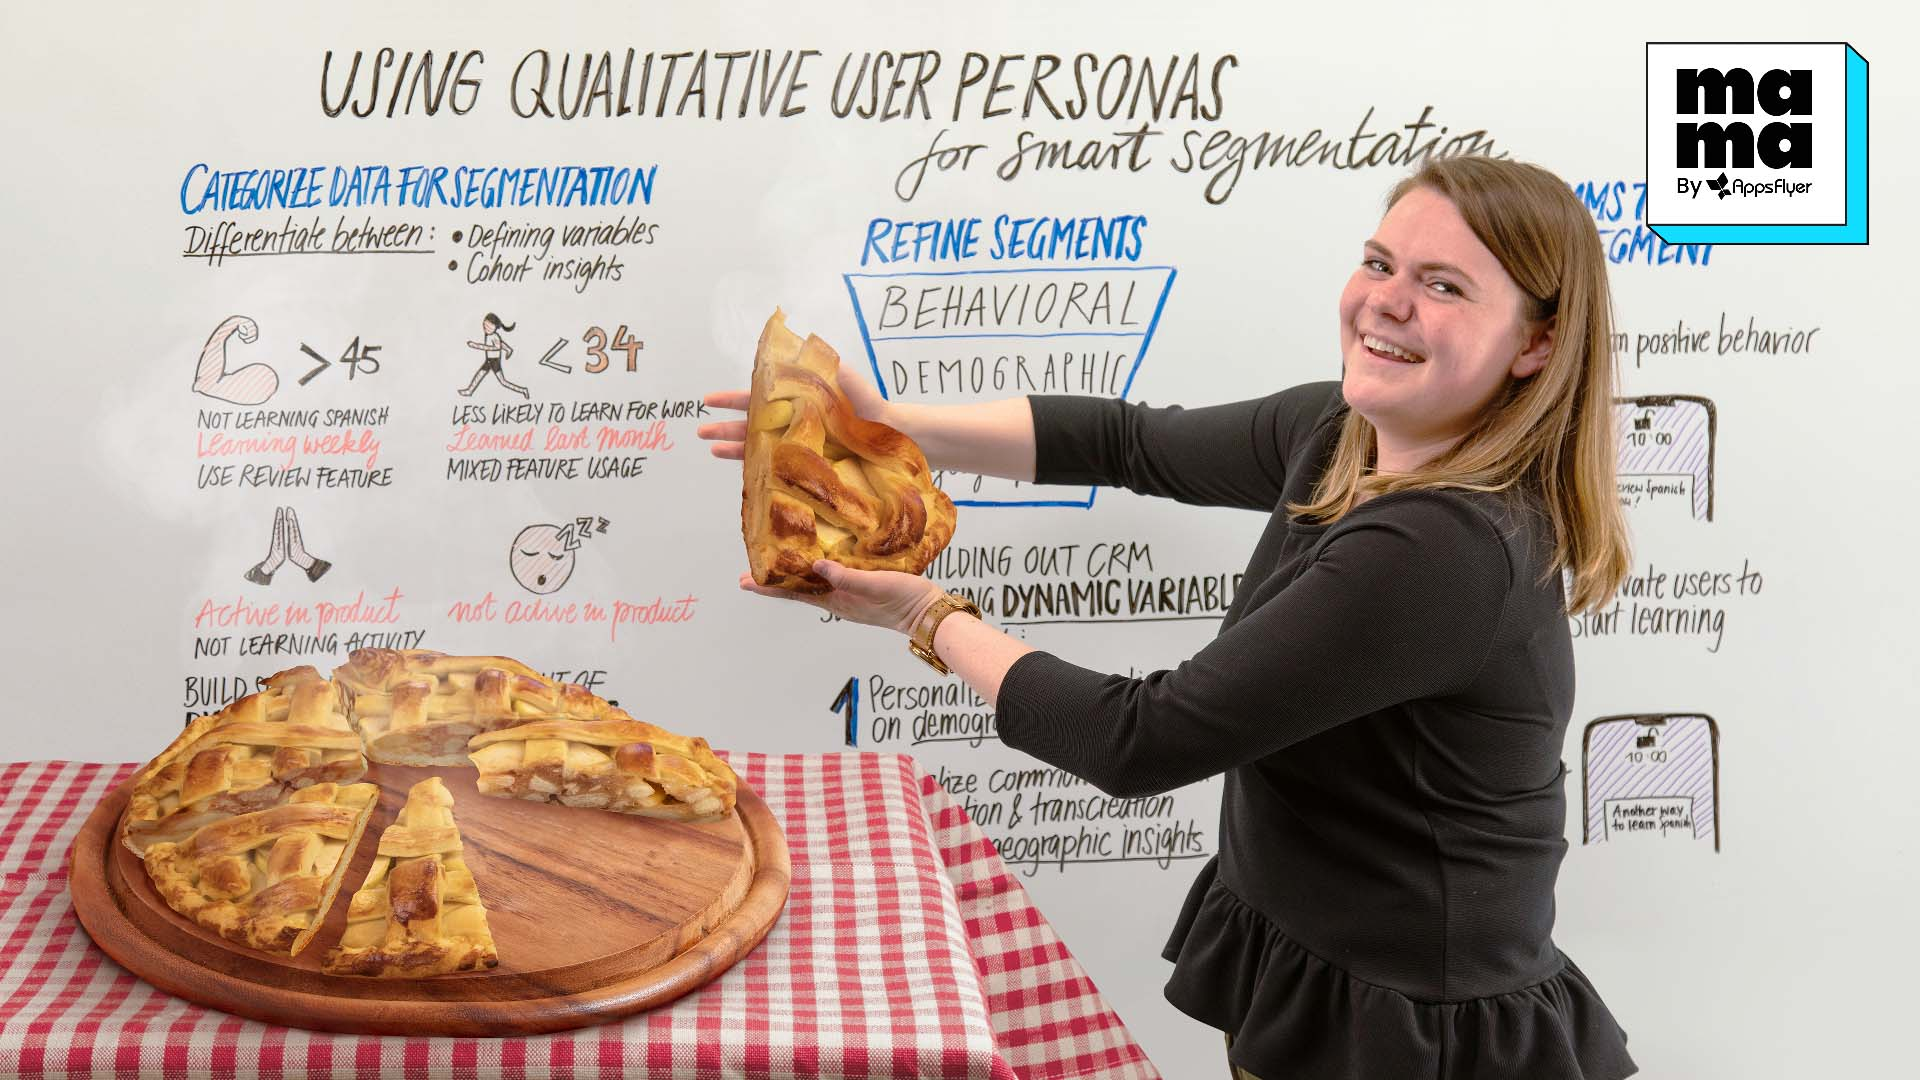 Qualitative Personas for Smart Segmentation [MAMA Board]